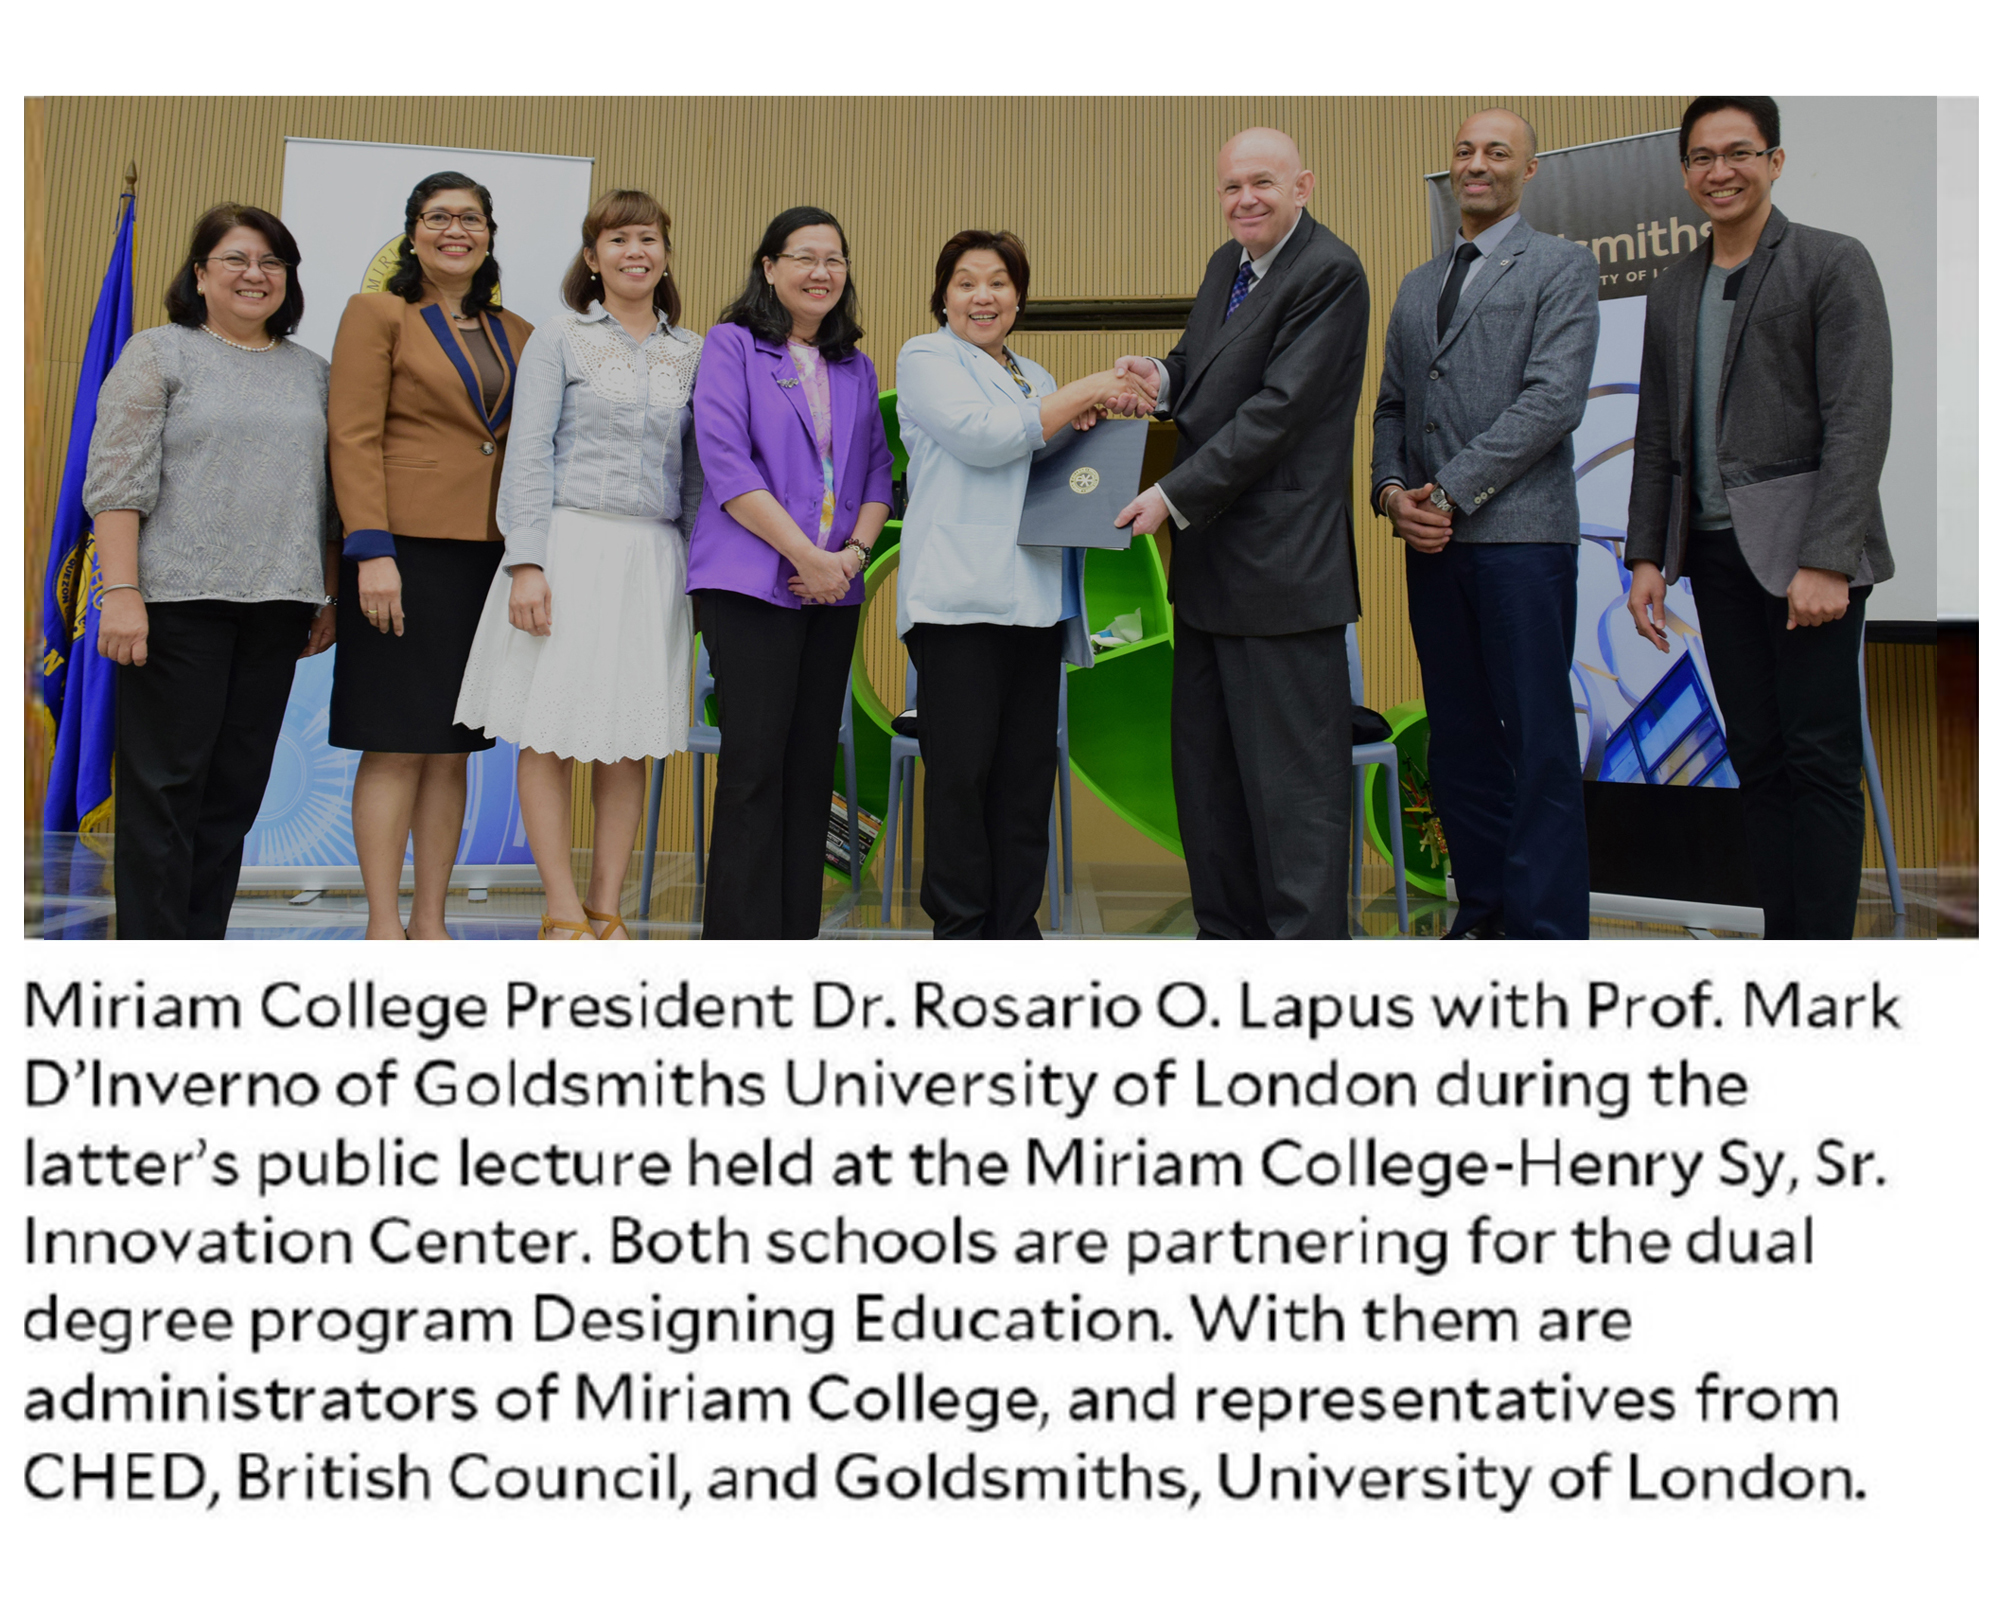 Miriam College, Goldsmiths in UK partner for dual graduate degree program in designing education